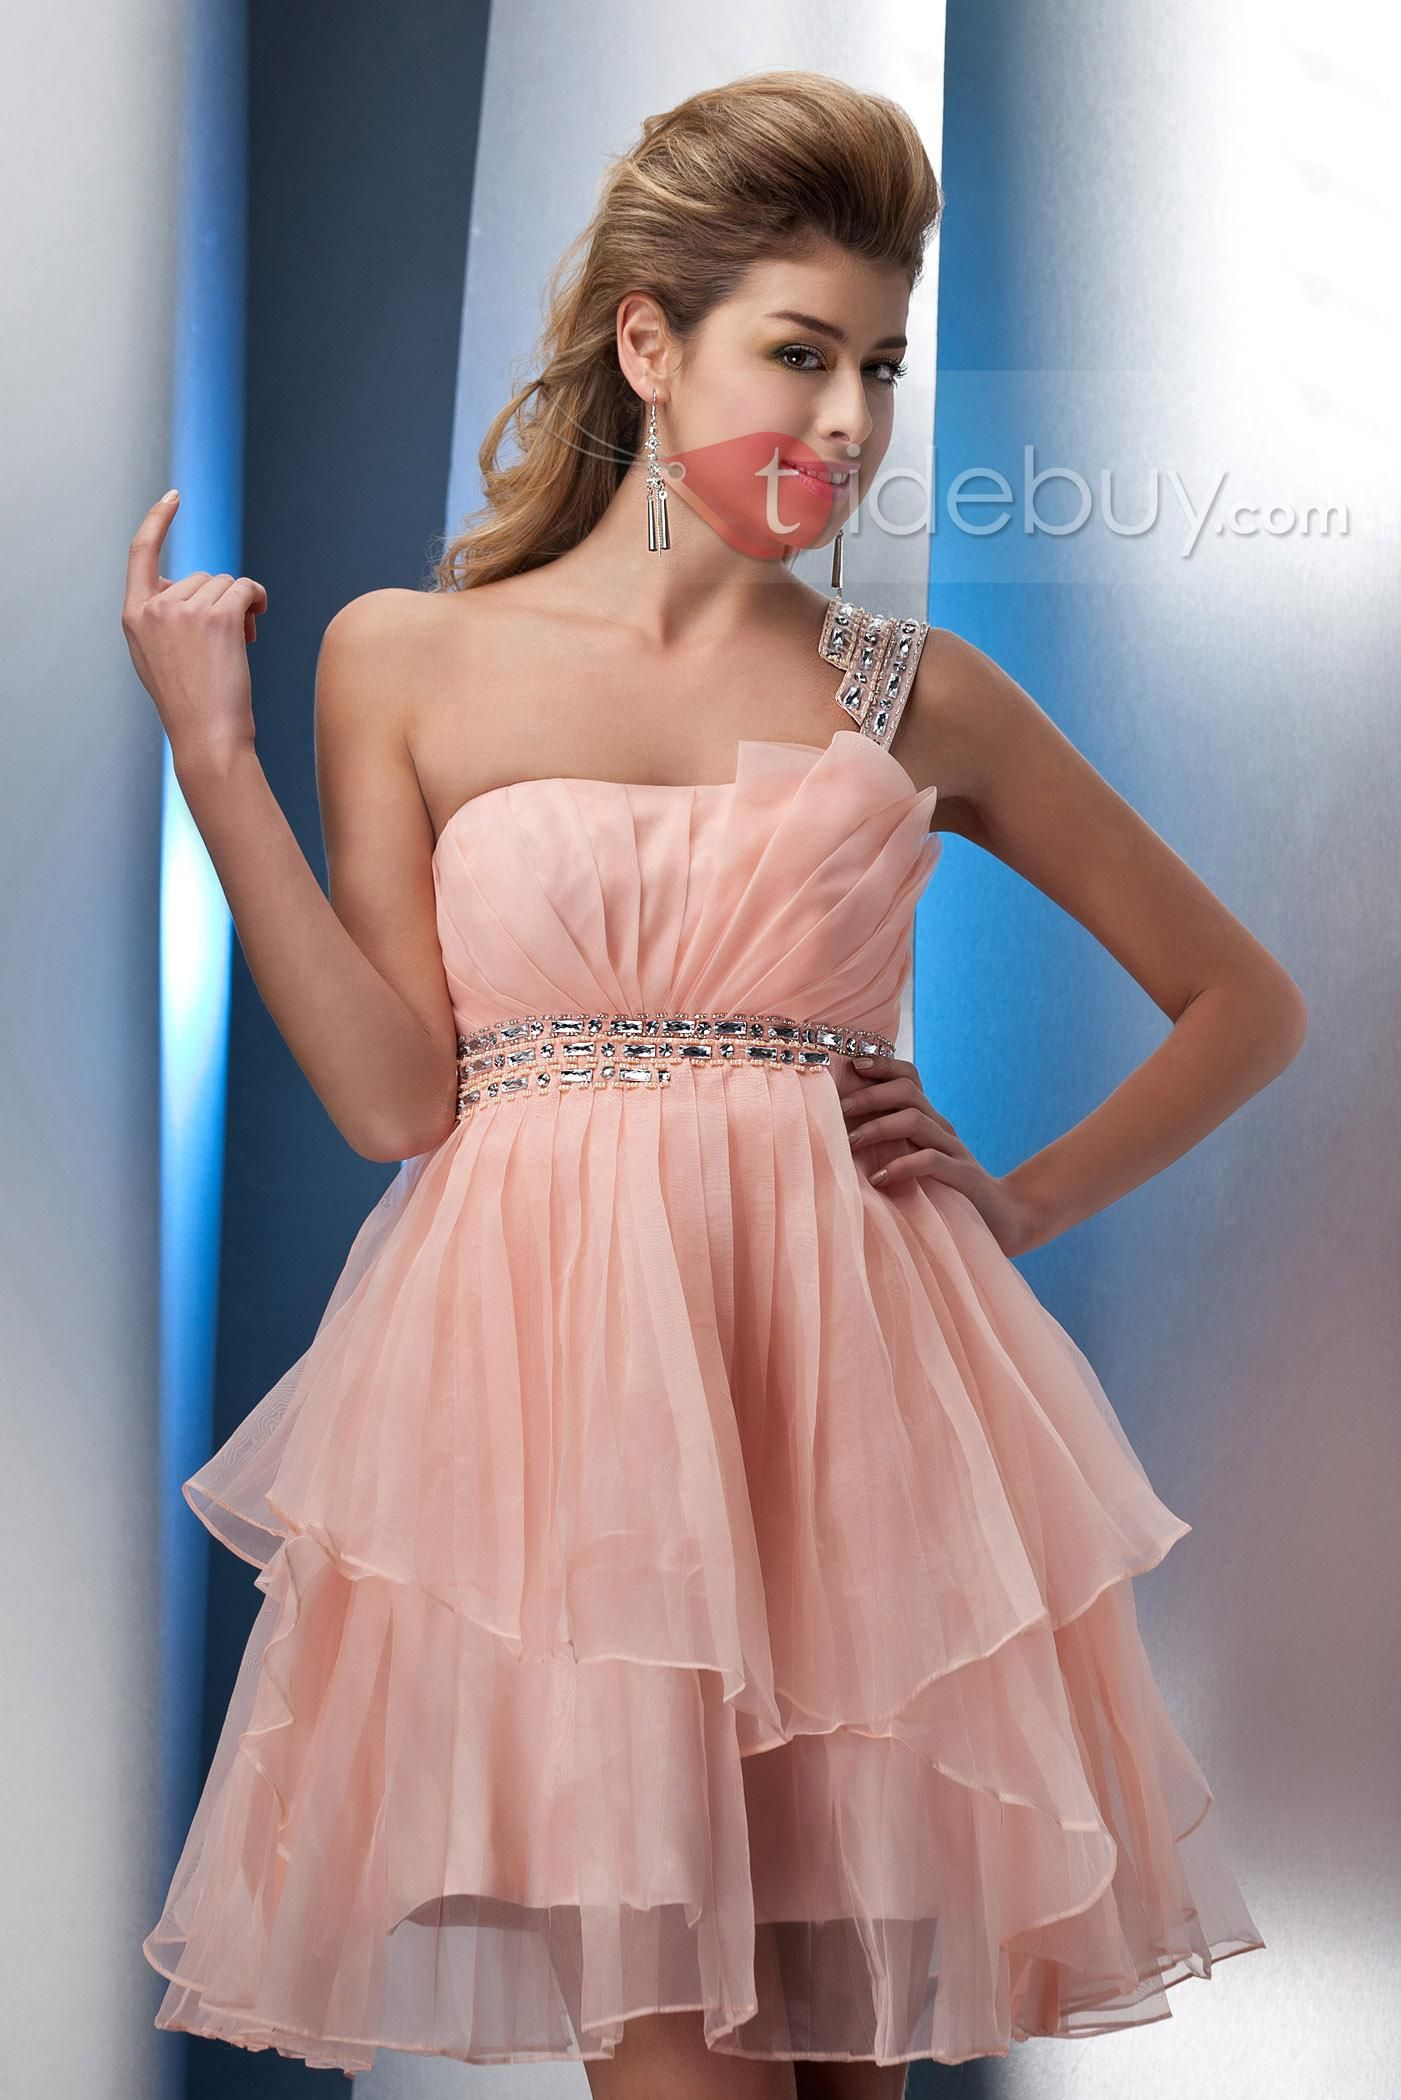 Brilliant One-Shoulder Mini/Short-Length Empire Waistline Sweet 16 ...